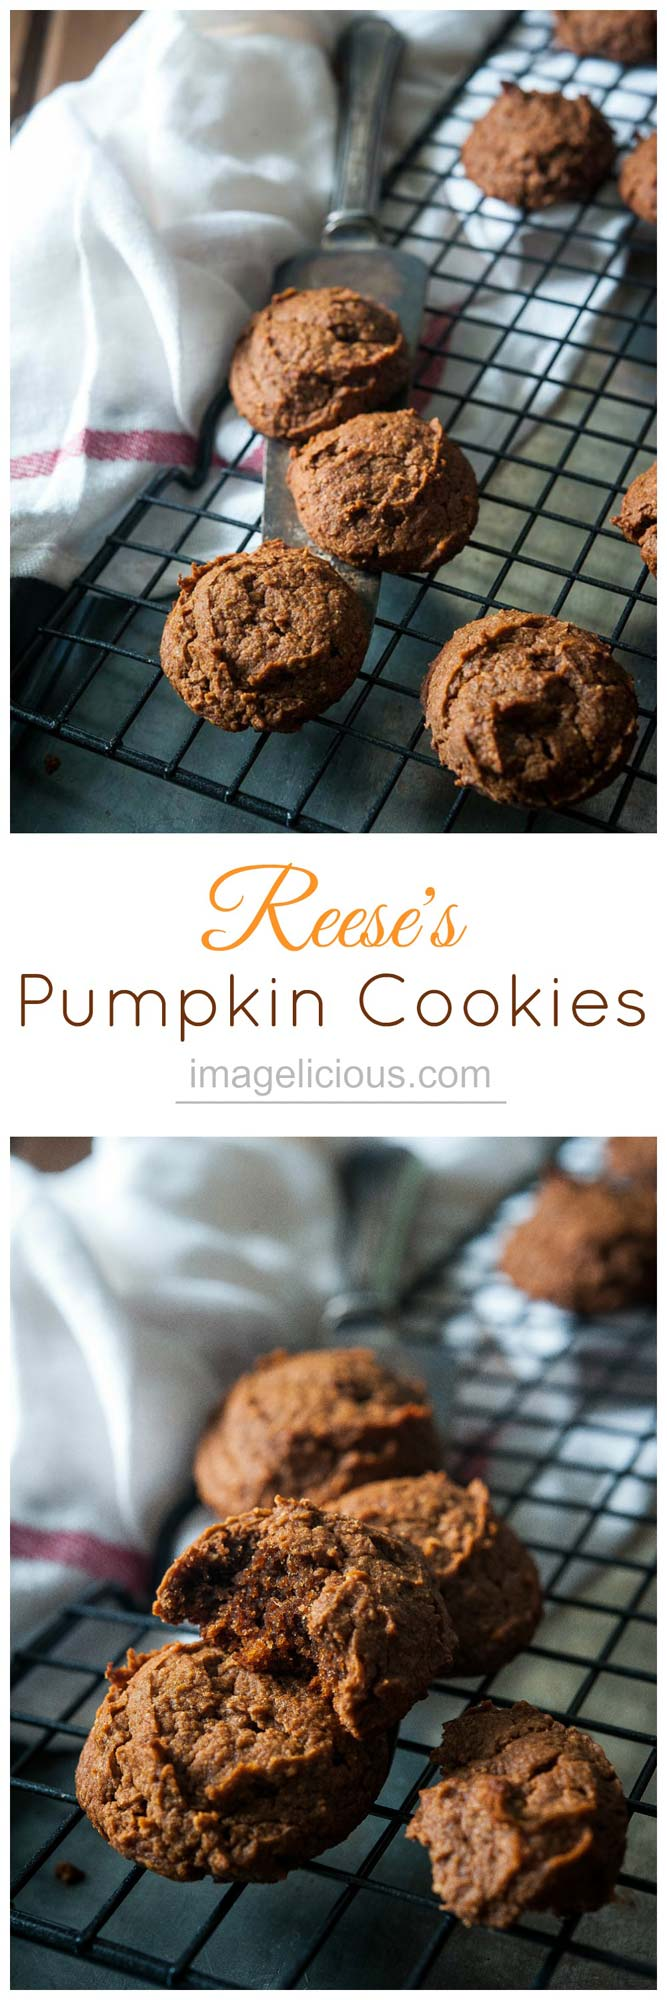 Reese's Pumpkin Cookies only use 3 ingredients and the batter comes together in a matter of minutes. Cookies have intense peanut butter taste and are perfect to use leftover pumpkin. They are also gluten-free | Imagelicious